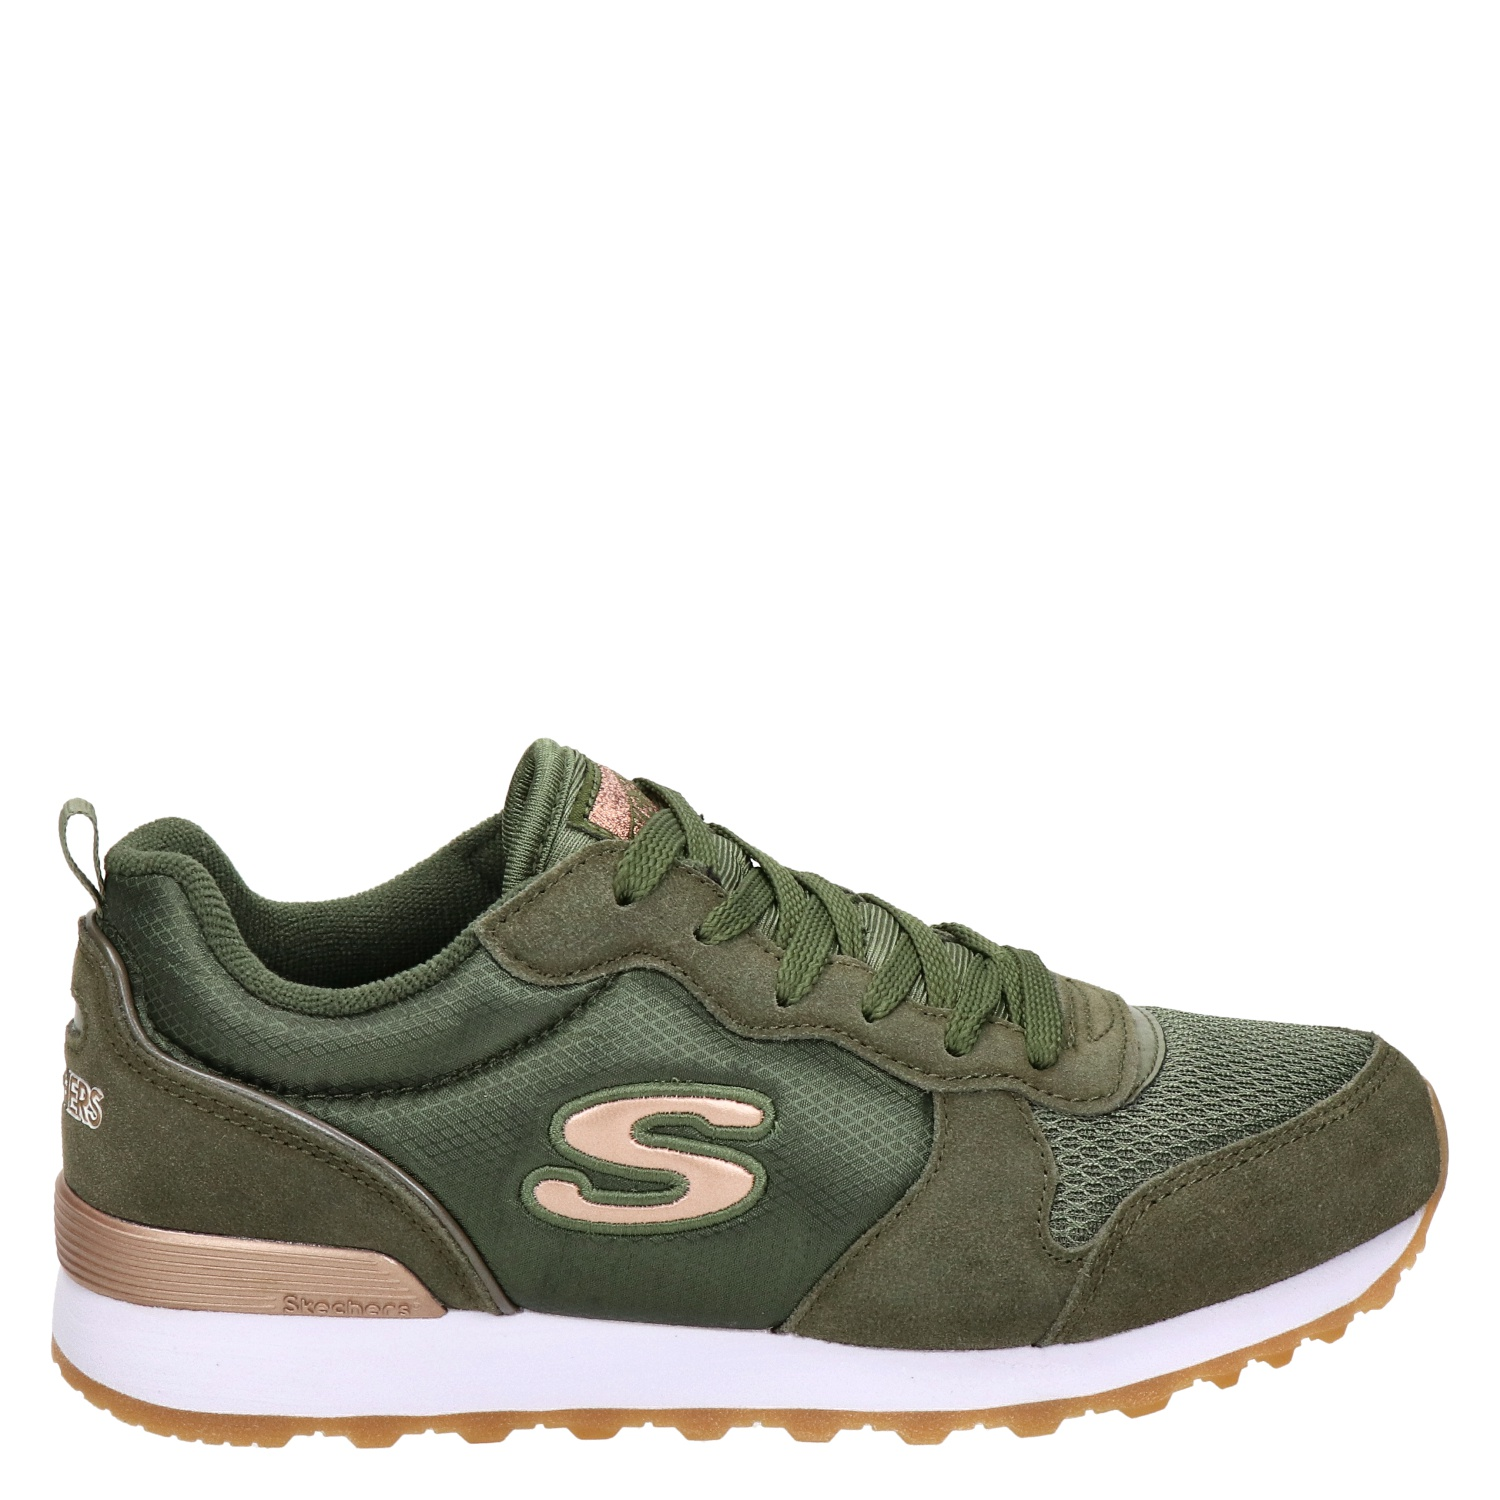 Skechers Dames Skechers Dames Lage Sneakers Groen